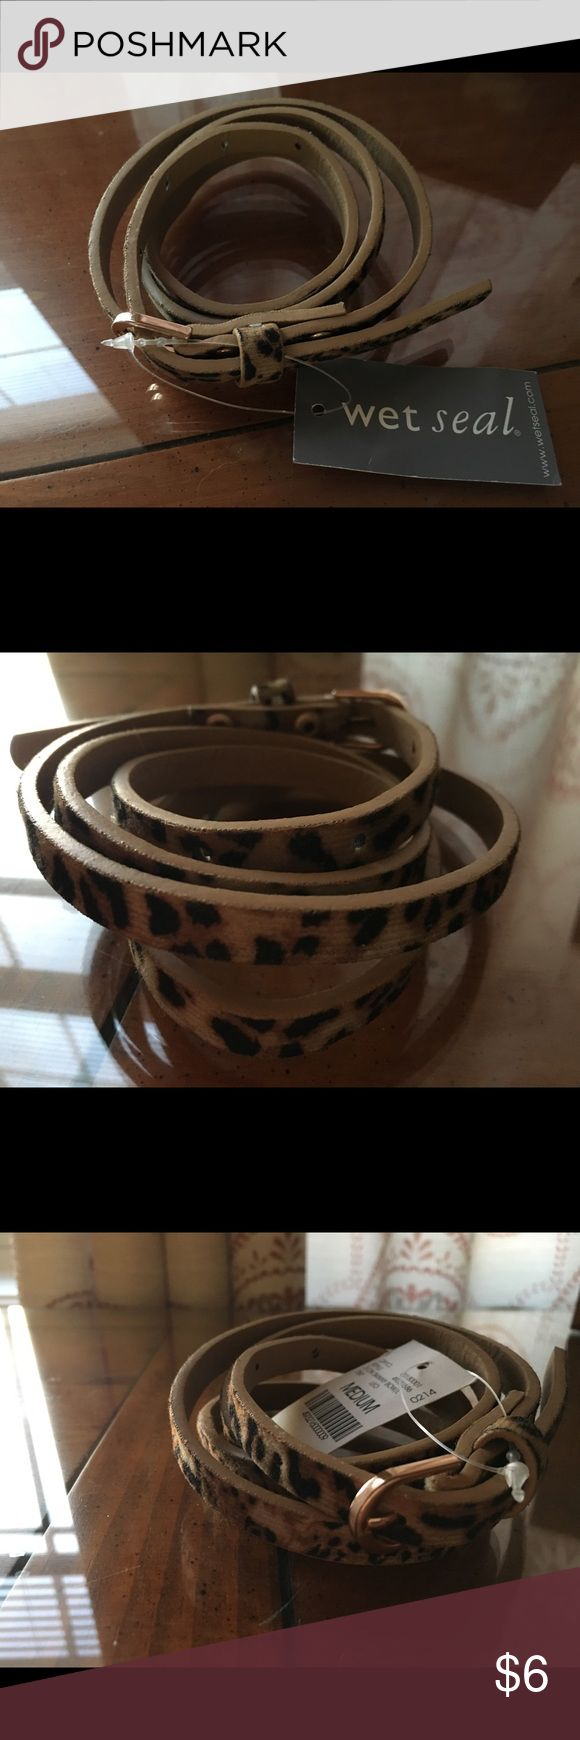 Wet Seal animal print belt. New with tag. Wet Seal belt. Wet Seal Accessories Belts